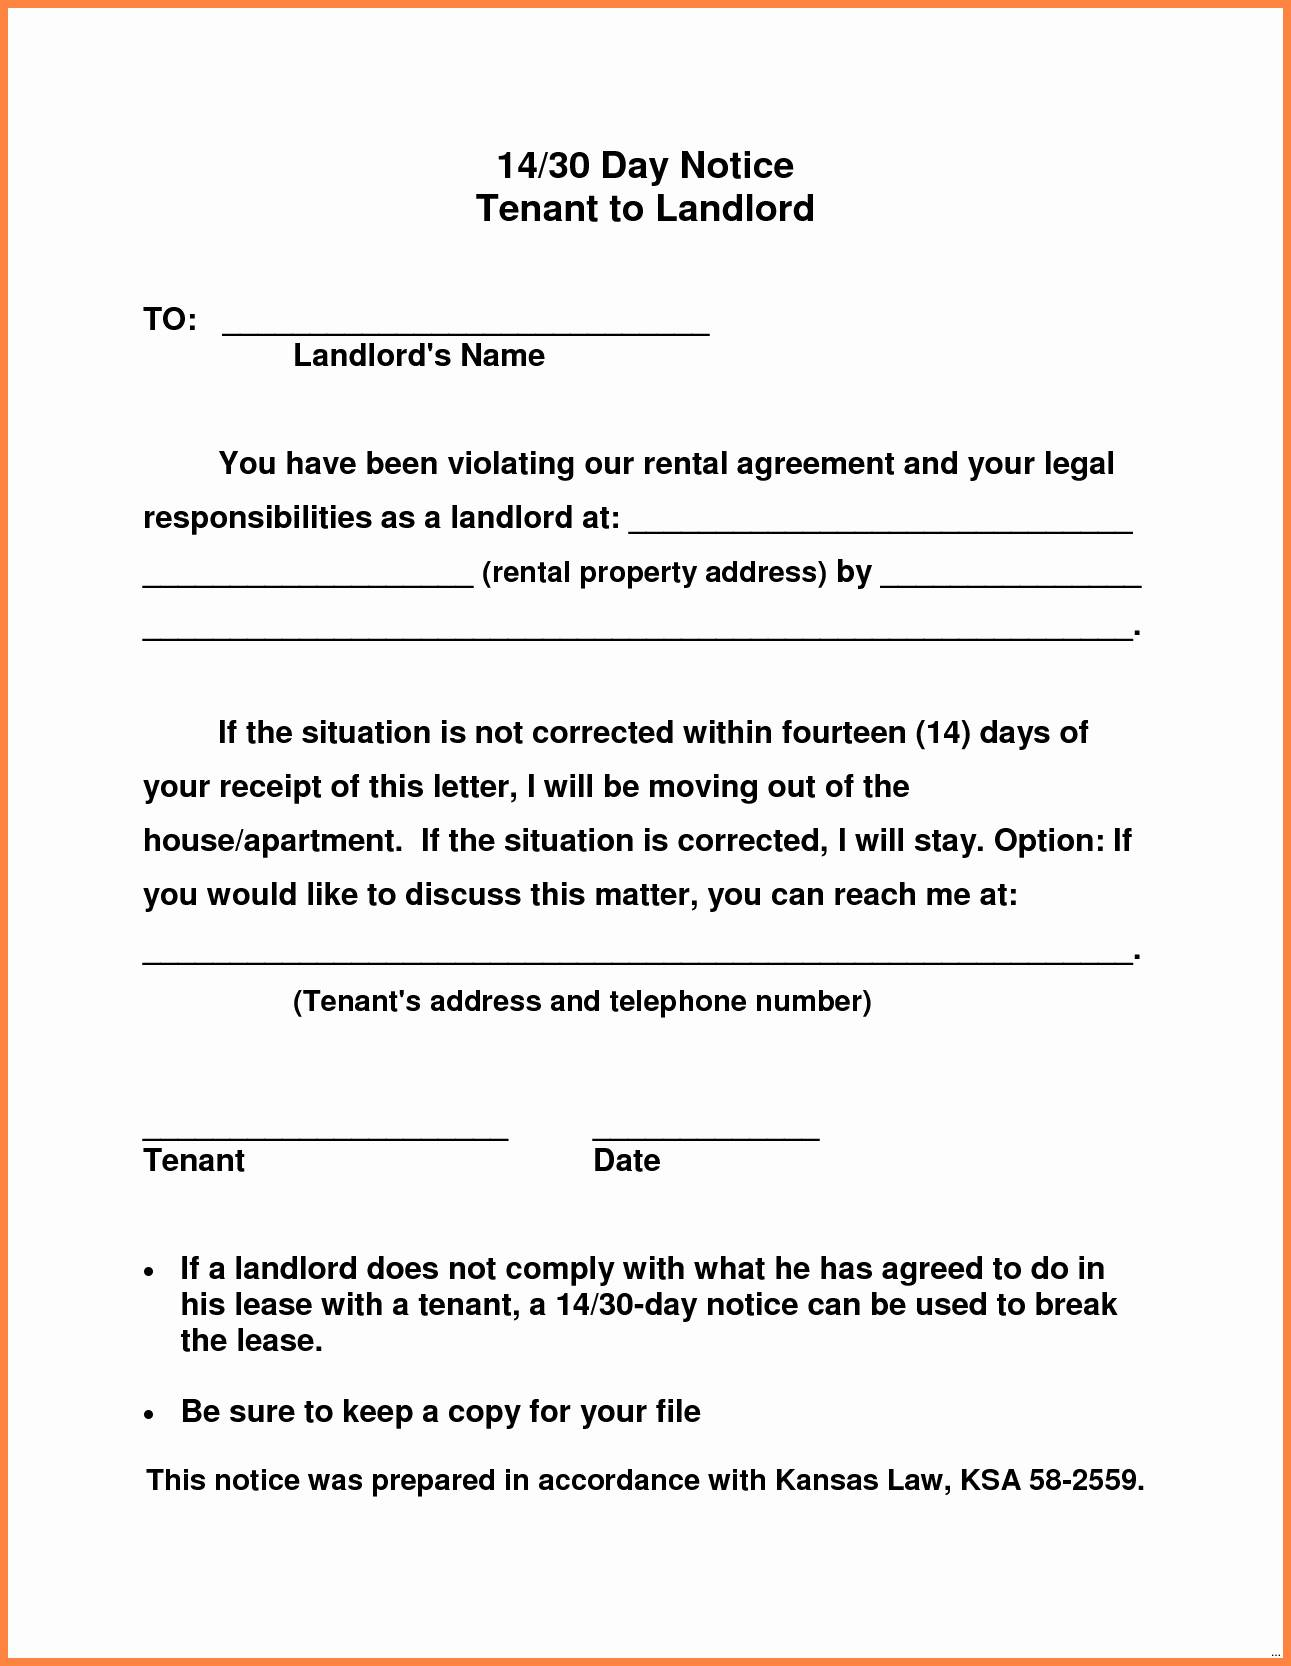 Notice Letter to Tenant From Landlord Template - 30 Day Notice Template to Landlord Inspirational 20 Fresh Letter